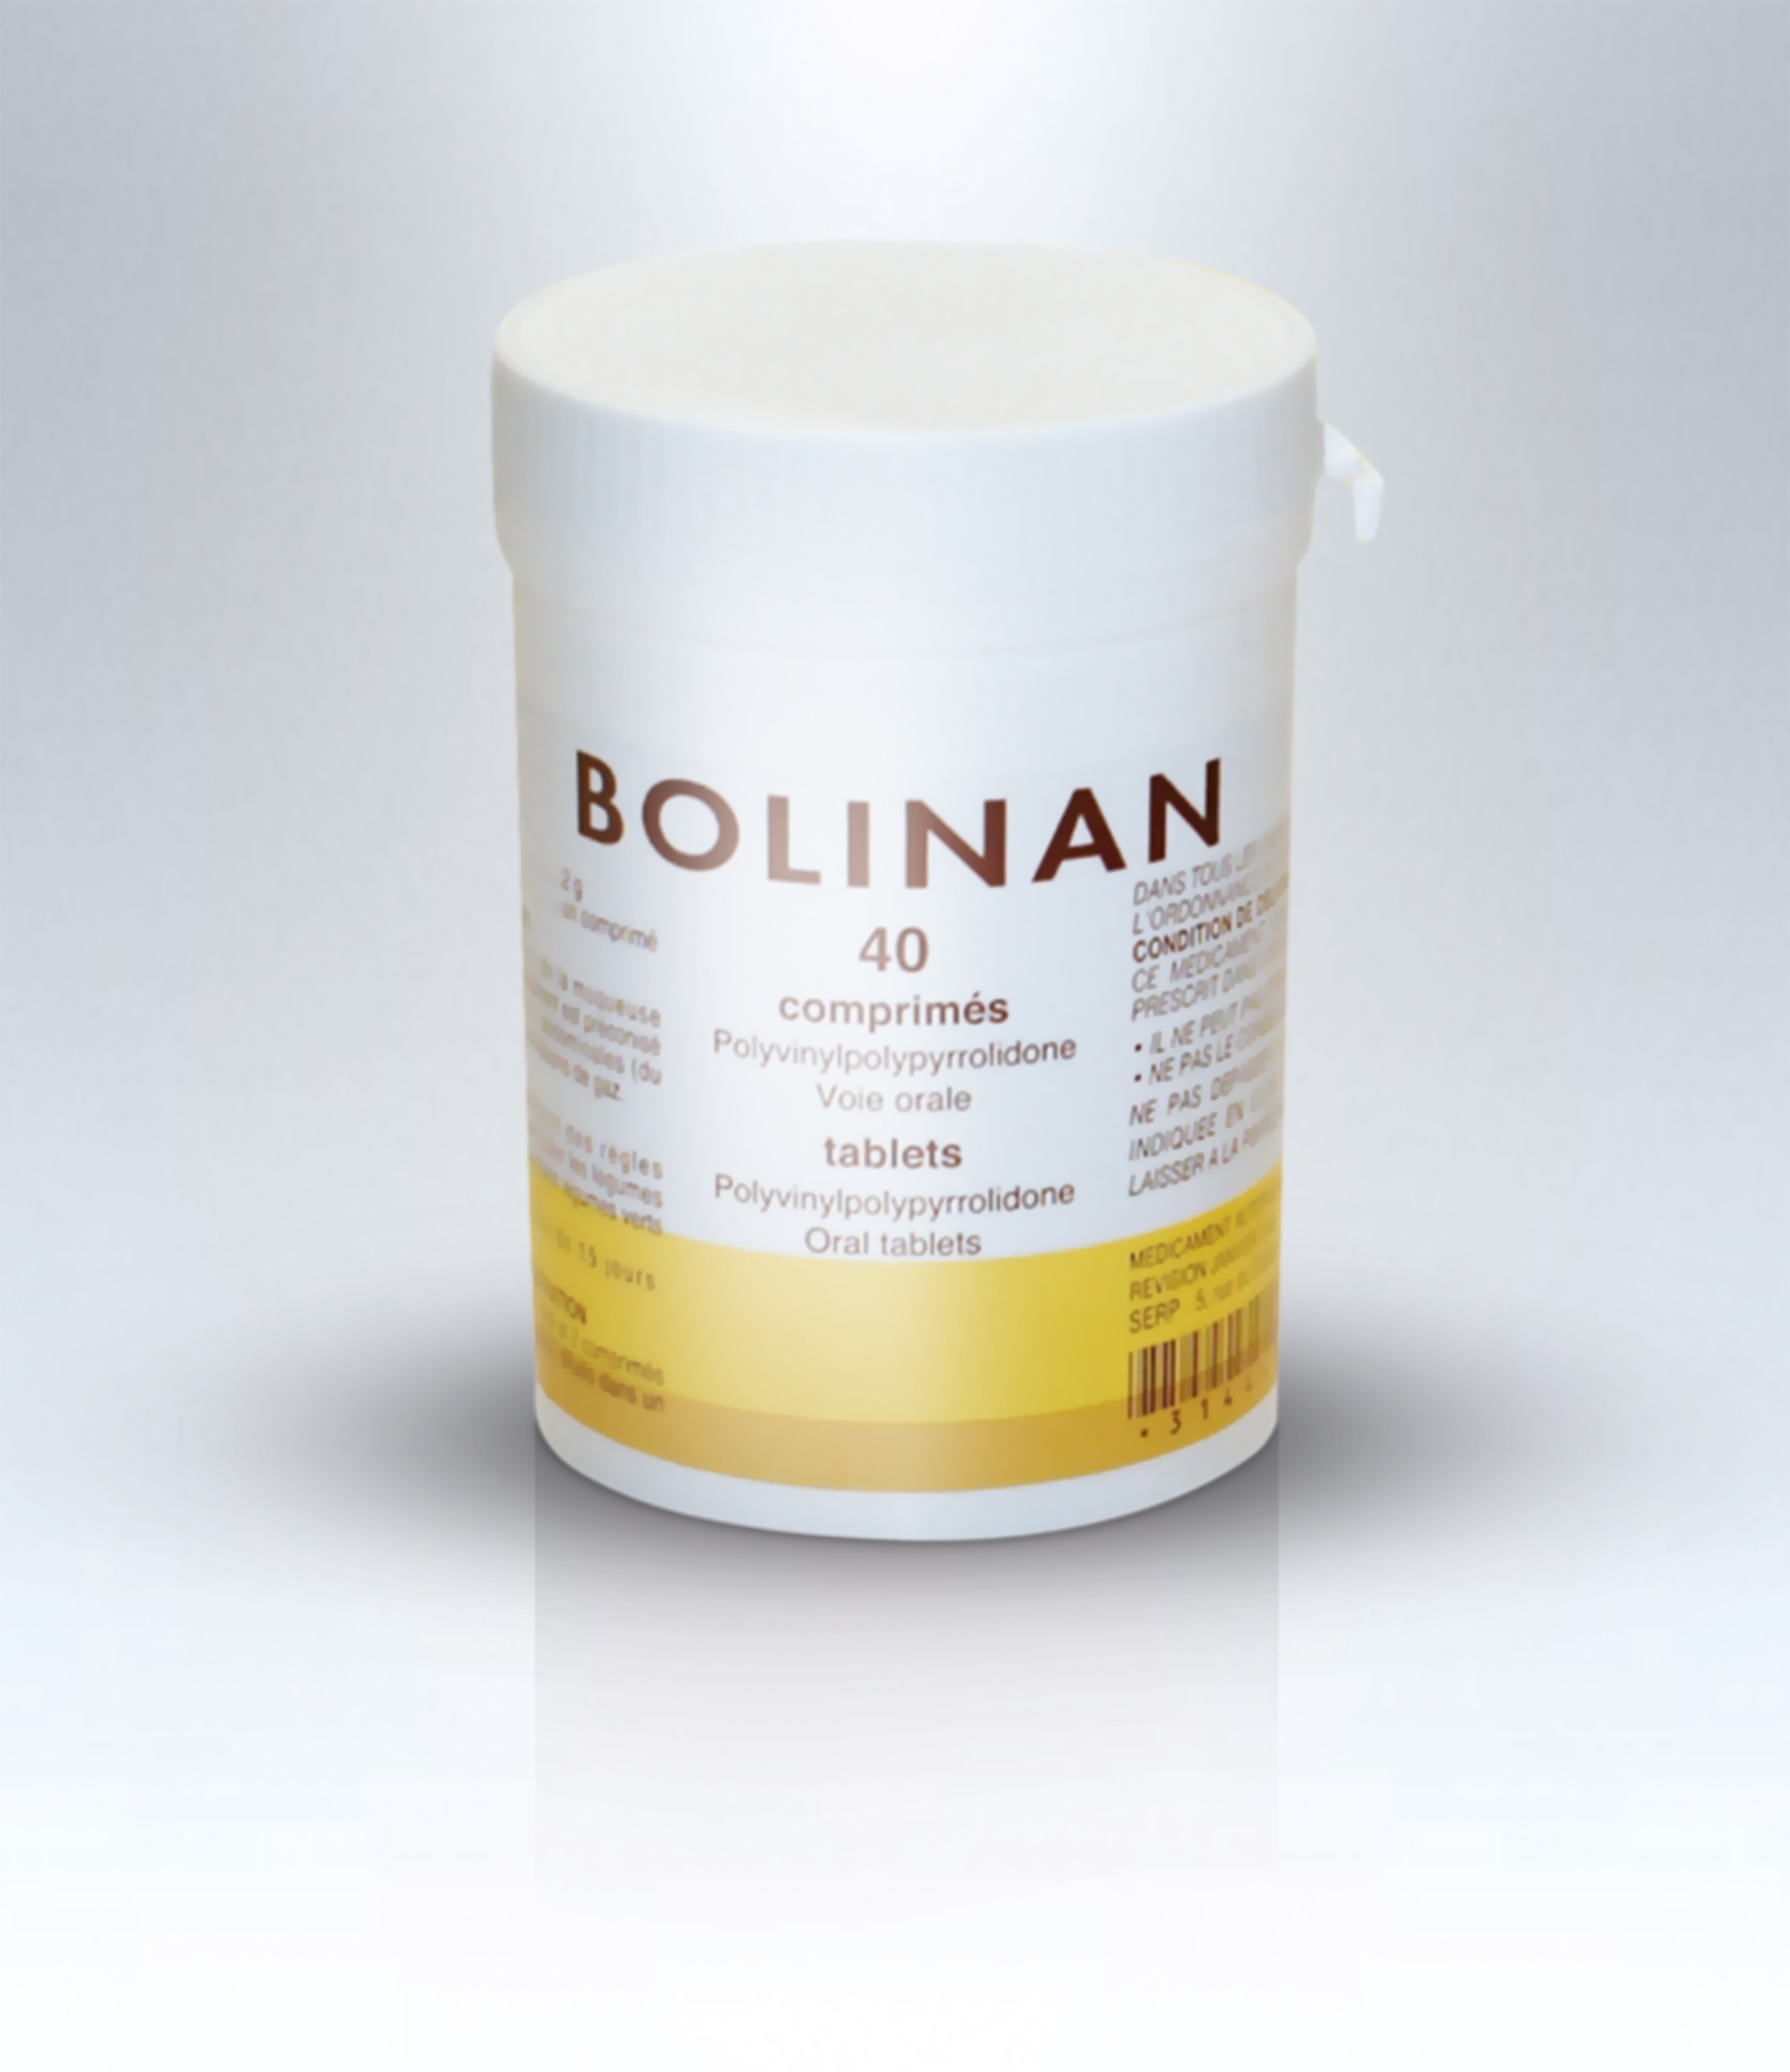 Image BOLINAN 2 g Cpr 2T/20